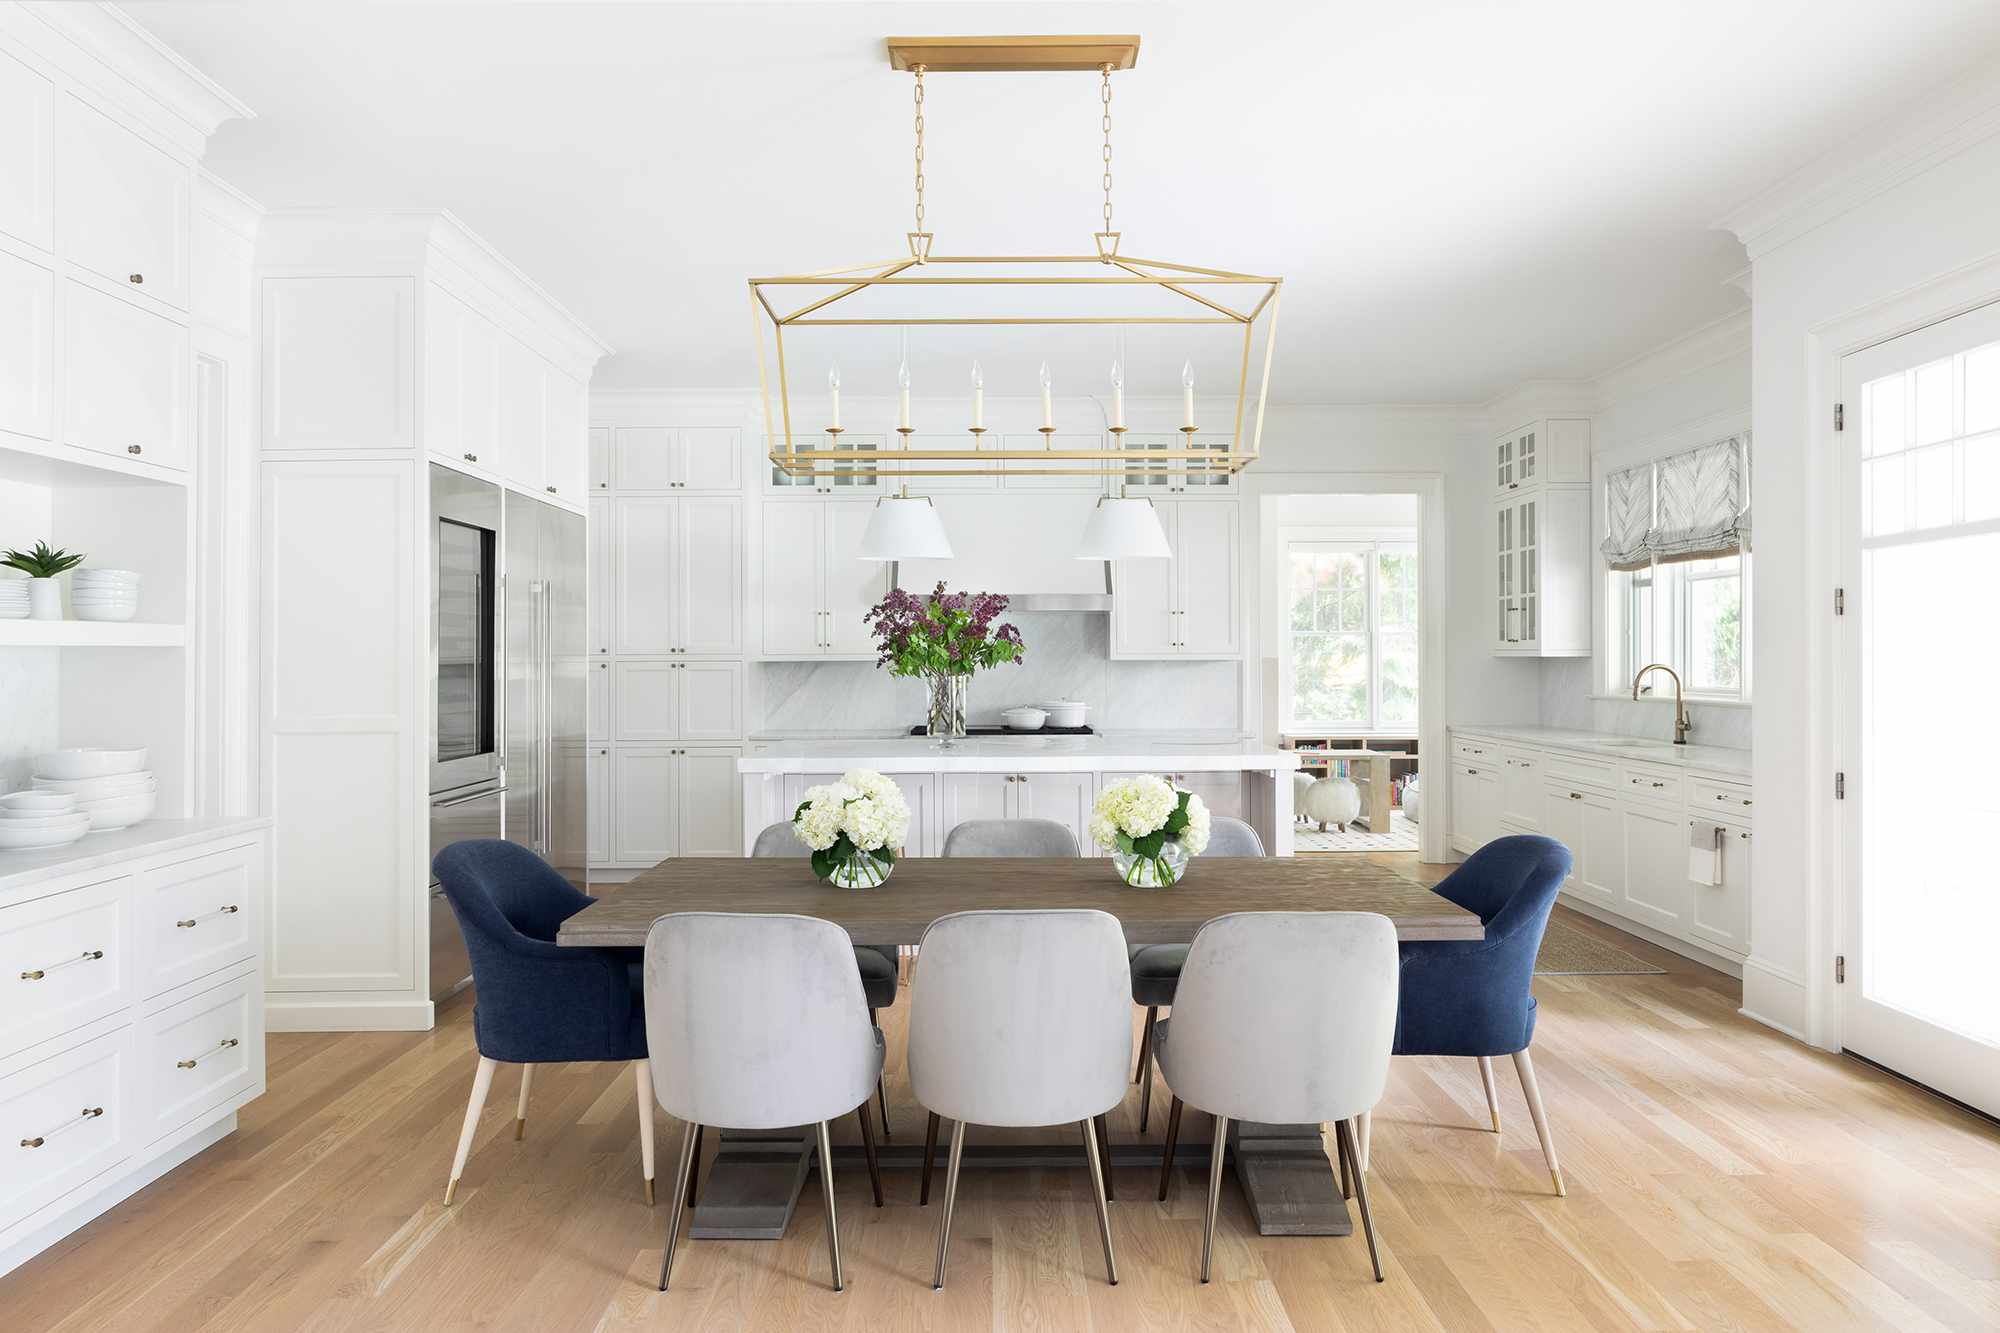 new jersey home tour - kitchen